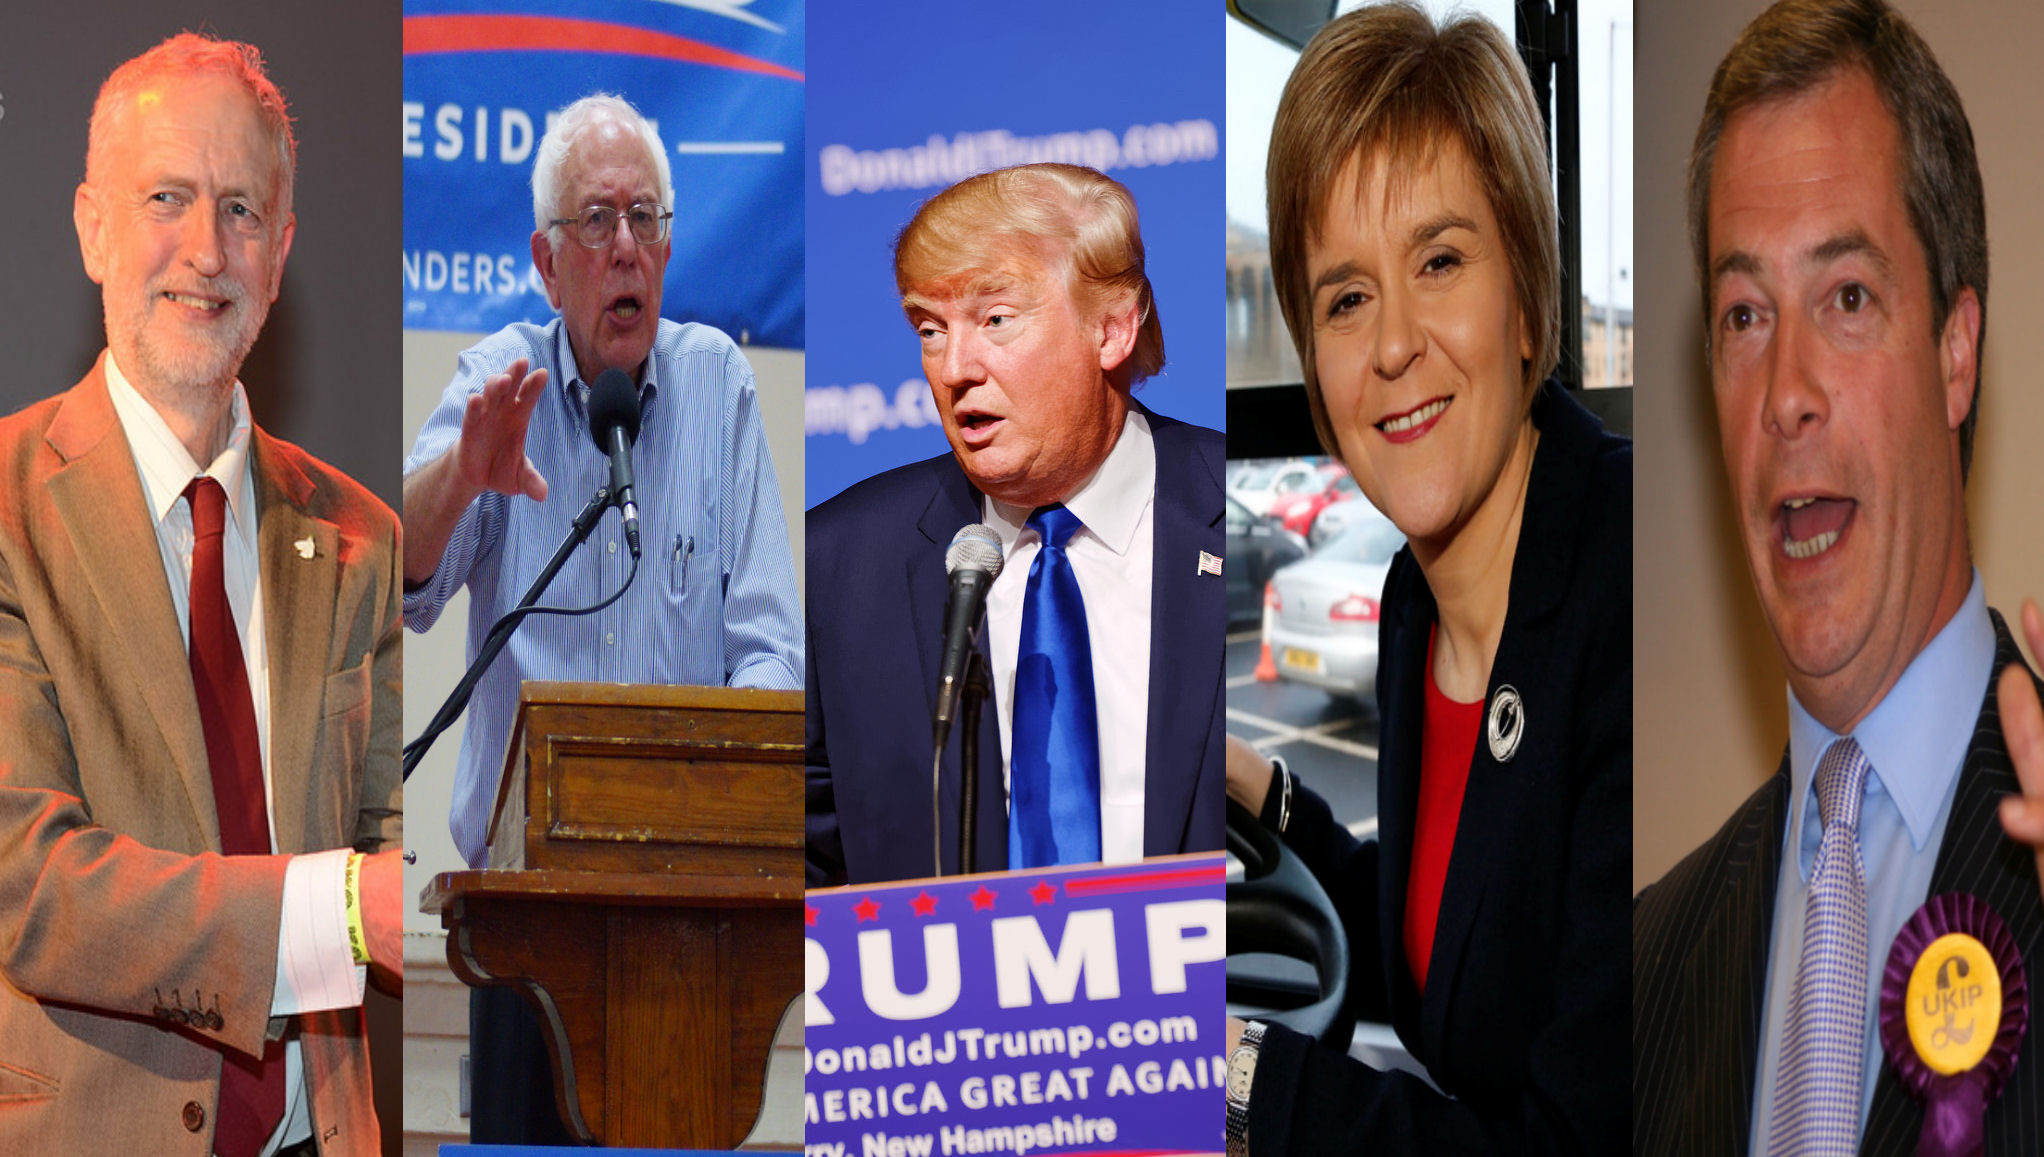 The establishment of British and American politics have been shaken up in recent years by people such as (from left to right) Jeremy Corbyn, Bernie Sanders, Donald Trump, Nicola Sturgeon, and Nigel Farage.  Image Credits: Corbyn:  See Li  via  Flickr , Sanders:  Marc Nozell  via  Flickr   cc , Trump:  Michael Vadon  via  Flickr   cc , Sturgeon:  Ninian Reid  via  Flickr   cc,  Farage:  Euro Realist Newsletter  via  Flickr . Modifications and montage by Wesley Hutchins.